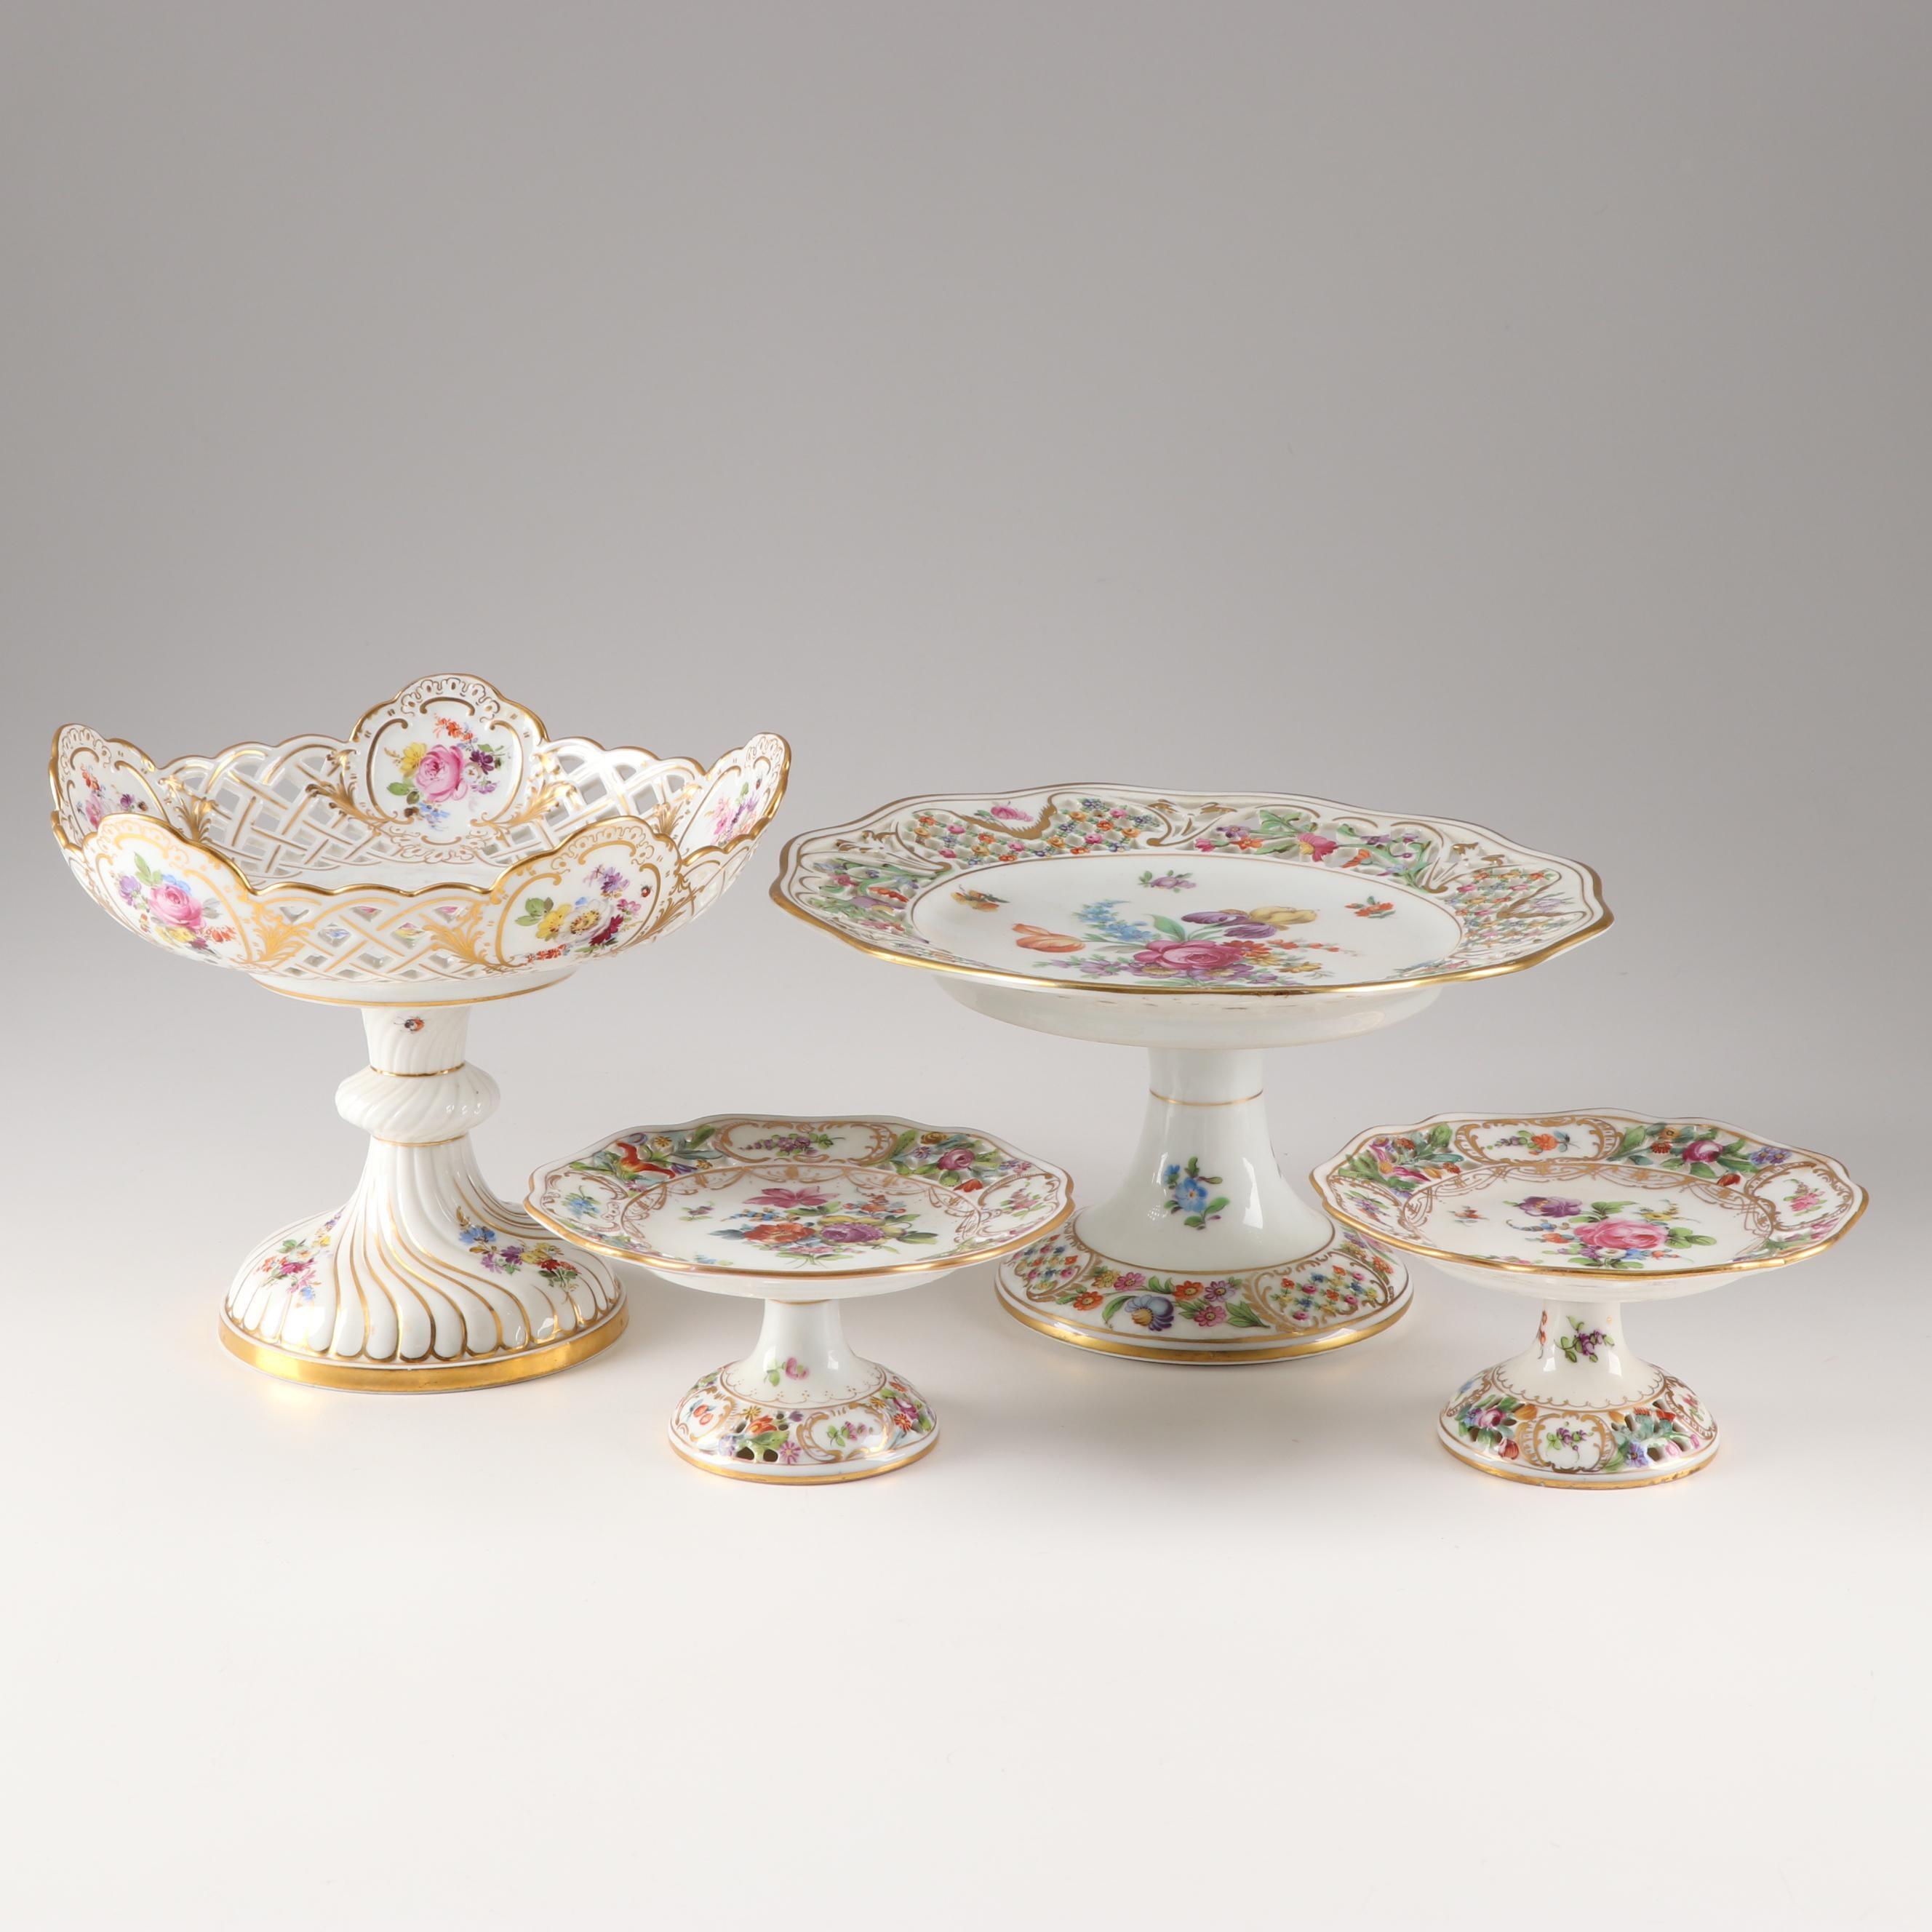 Hand Painted Centerpieces Including Meissan and Dresden, 20th Century